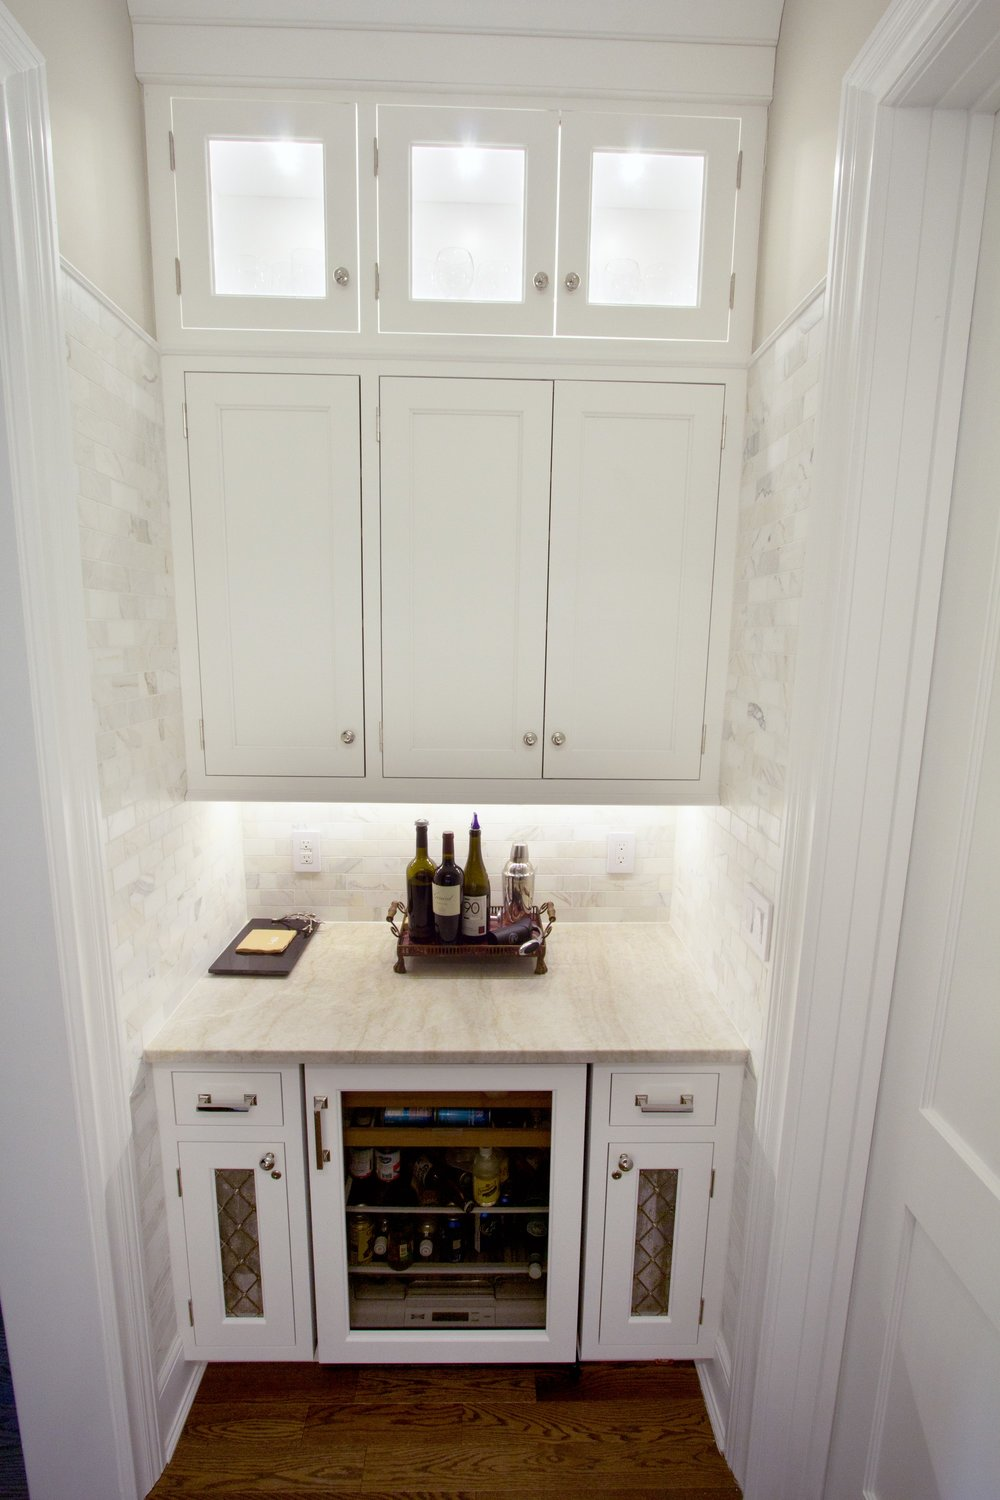 Transitional style kitchen with a small wine storage